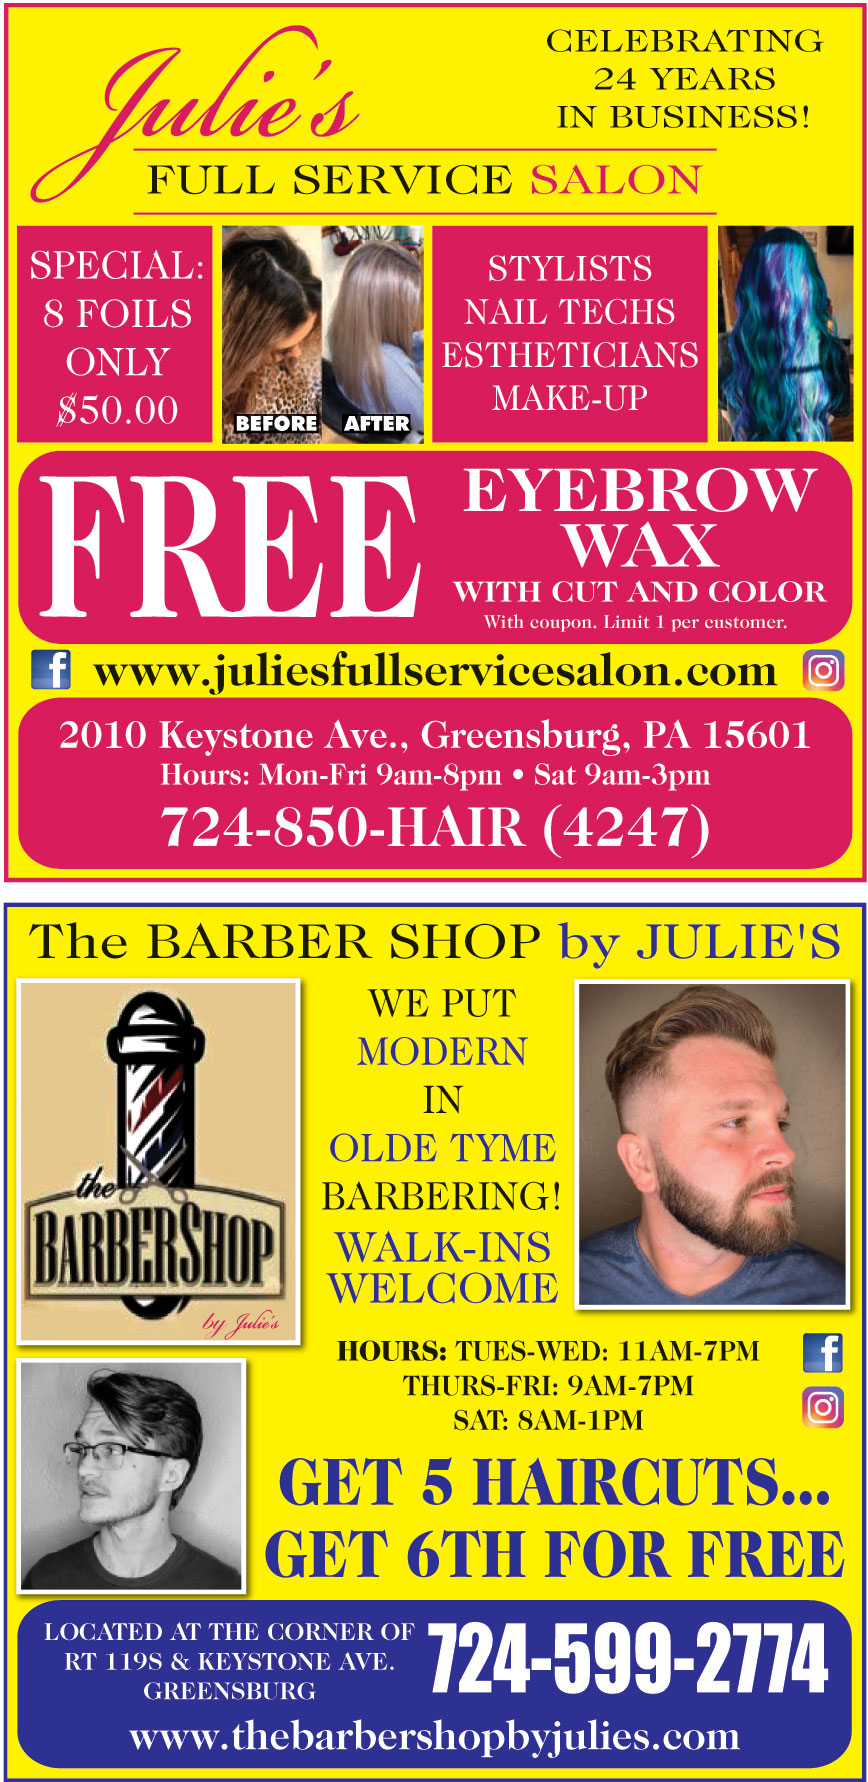 JULIES FULL SERVICE SALON